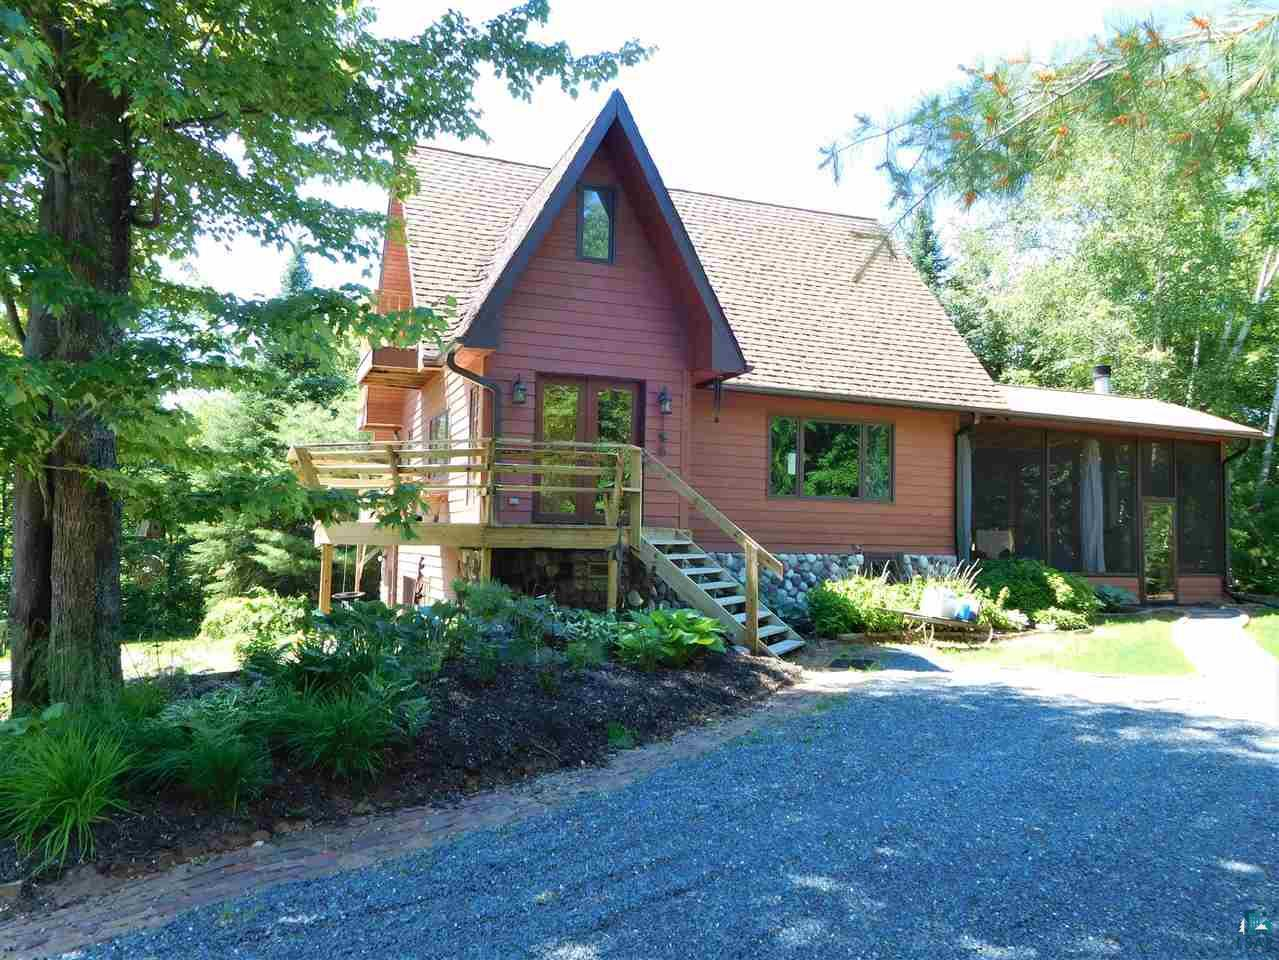 Stunning home with continual wow-factor inside & out! Nestled in the hills of Bayfield this three-bed, three-bath, two-car garage home has two-fireplaces, 15 KW entire home backup generator with newer mechanicals, well, septic and many other updates, a must-see indoor/outdoor room with vaulted ceiling, acre-wide pond, huge pole-barn that contains a finished guest room w/kitchenette, two-finished work/hobby spaces and enough room to store boats, tractors, RV's, vehicles and extra storage space. So many thoughtful, modern updates create warm & comfortable spaces in every area of this home. Numerous decks offer brilliant views of the surrounding countryside and Lake Superior.  A gorgeous kitchen opens into the family room and dining area, and the upstairs Master bedroom has the ultimate in luxury with an attached bath, walk-in closets, laundry and soaking tub. Lower-level media room can also be used as an office with a separate entrance.  Just minutes to downtown Bayfield and the surrounding orchards and wineries - this is a home and area you'll treasure!